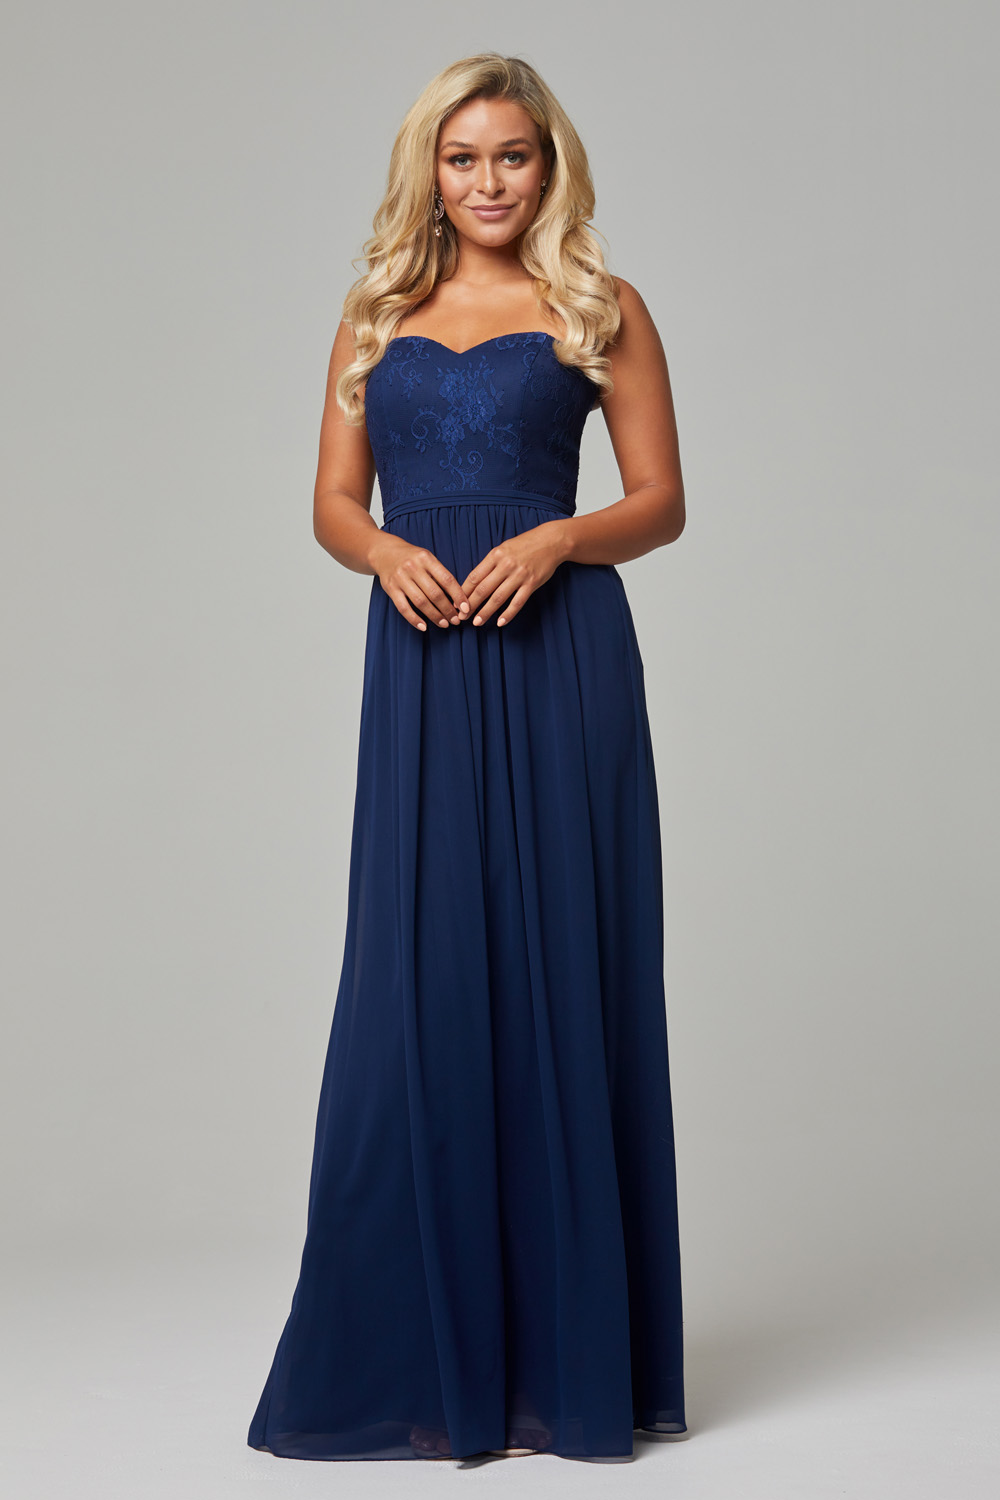 Nikita - Soft Lace - Bridesmaids Dress